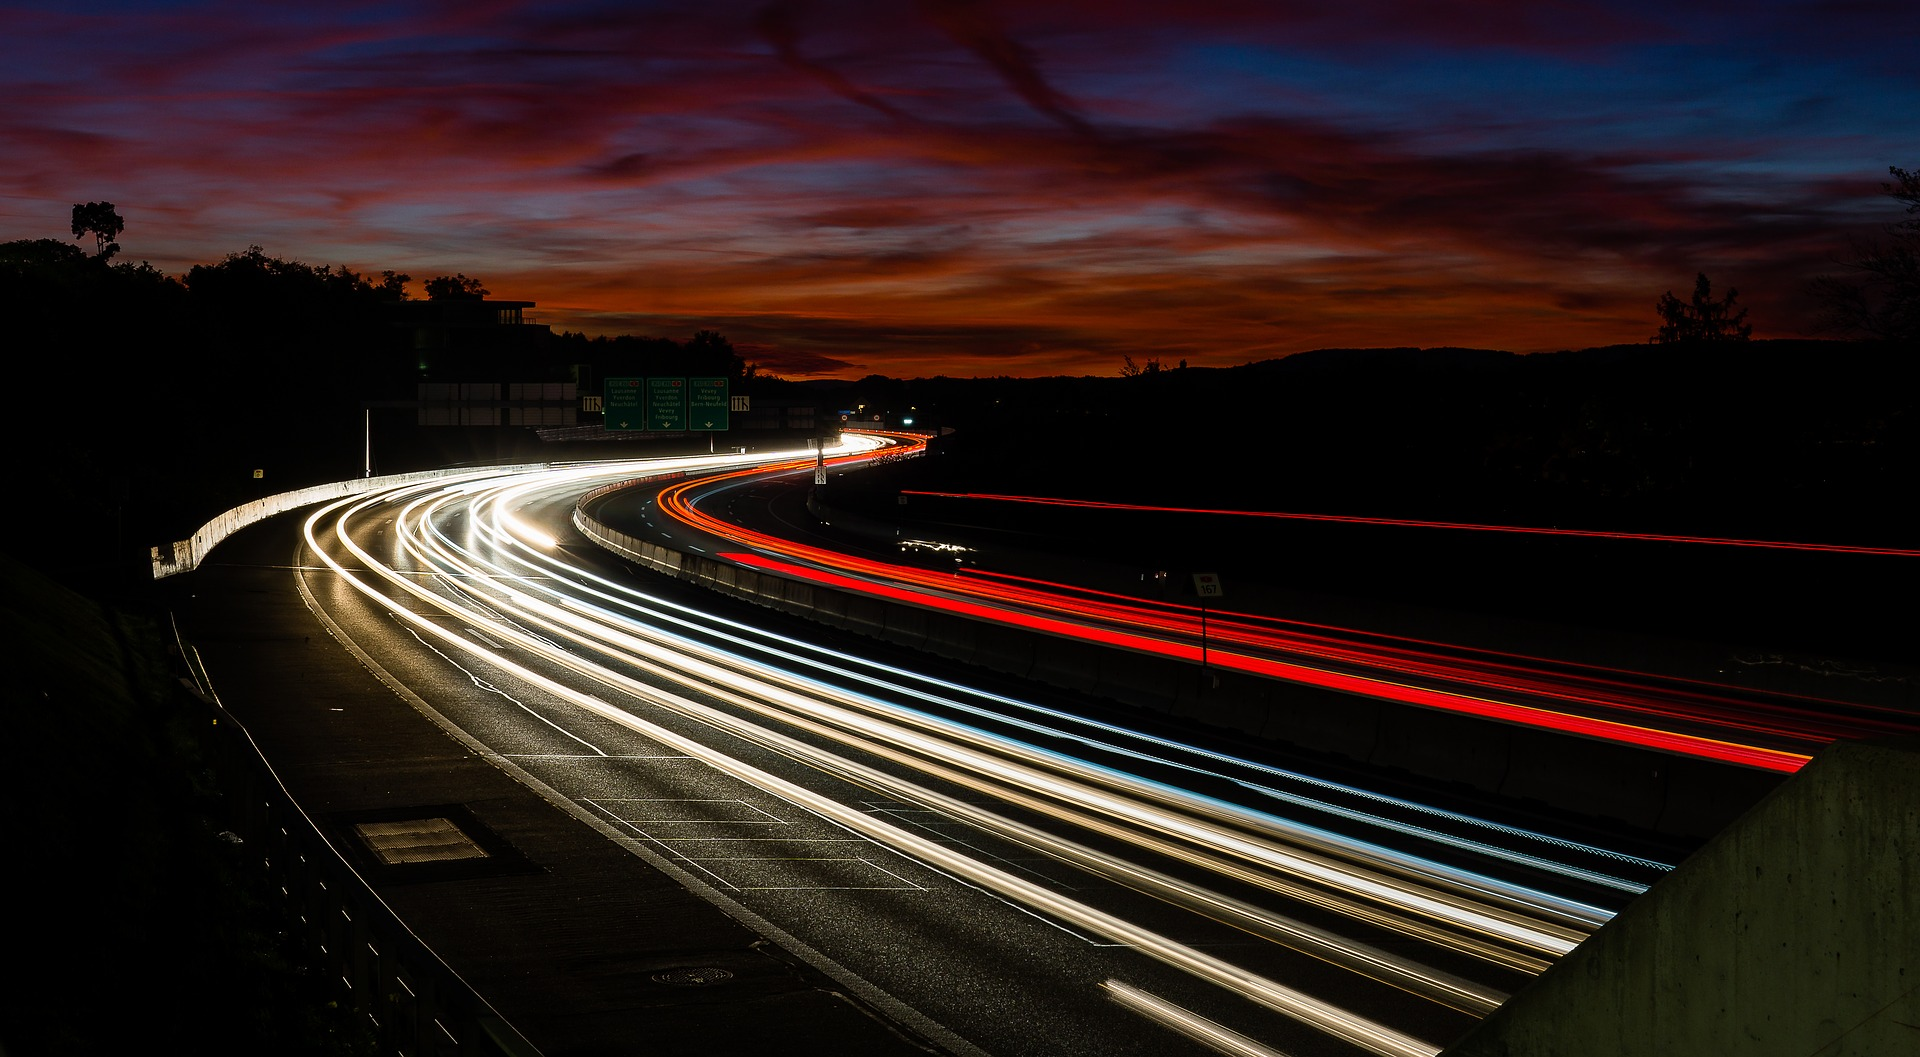 Autobahn (Stefan Nyffenegger from Pixabay)